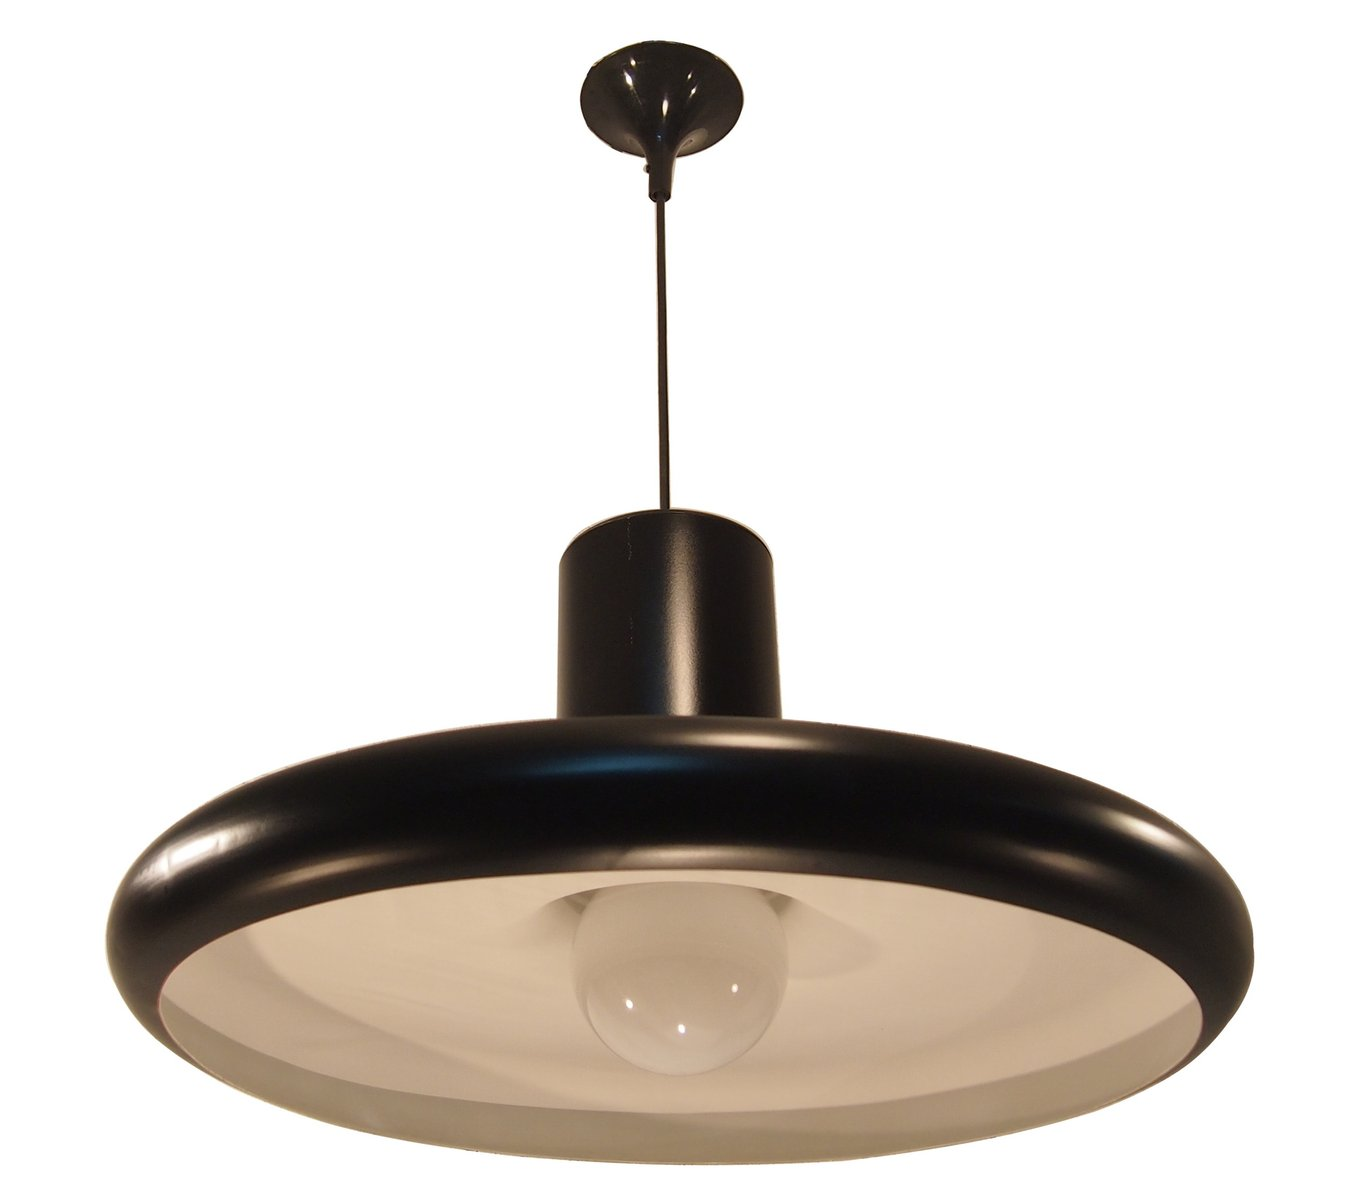 Black Industrial Light Part - 19: Mid-Century Black Industrial French Pendant Ceiling Light From Lita, 1960